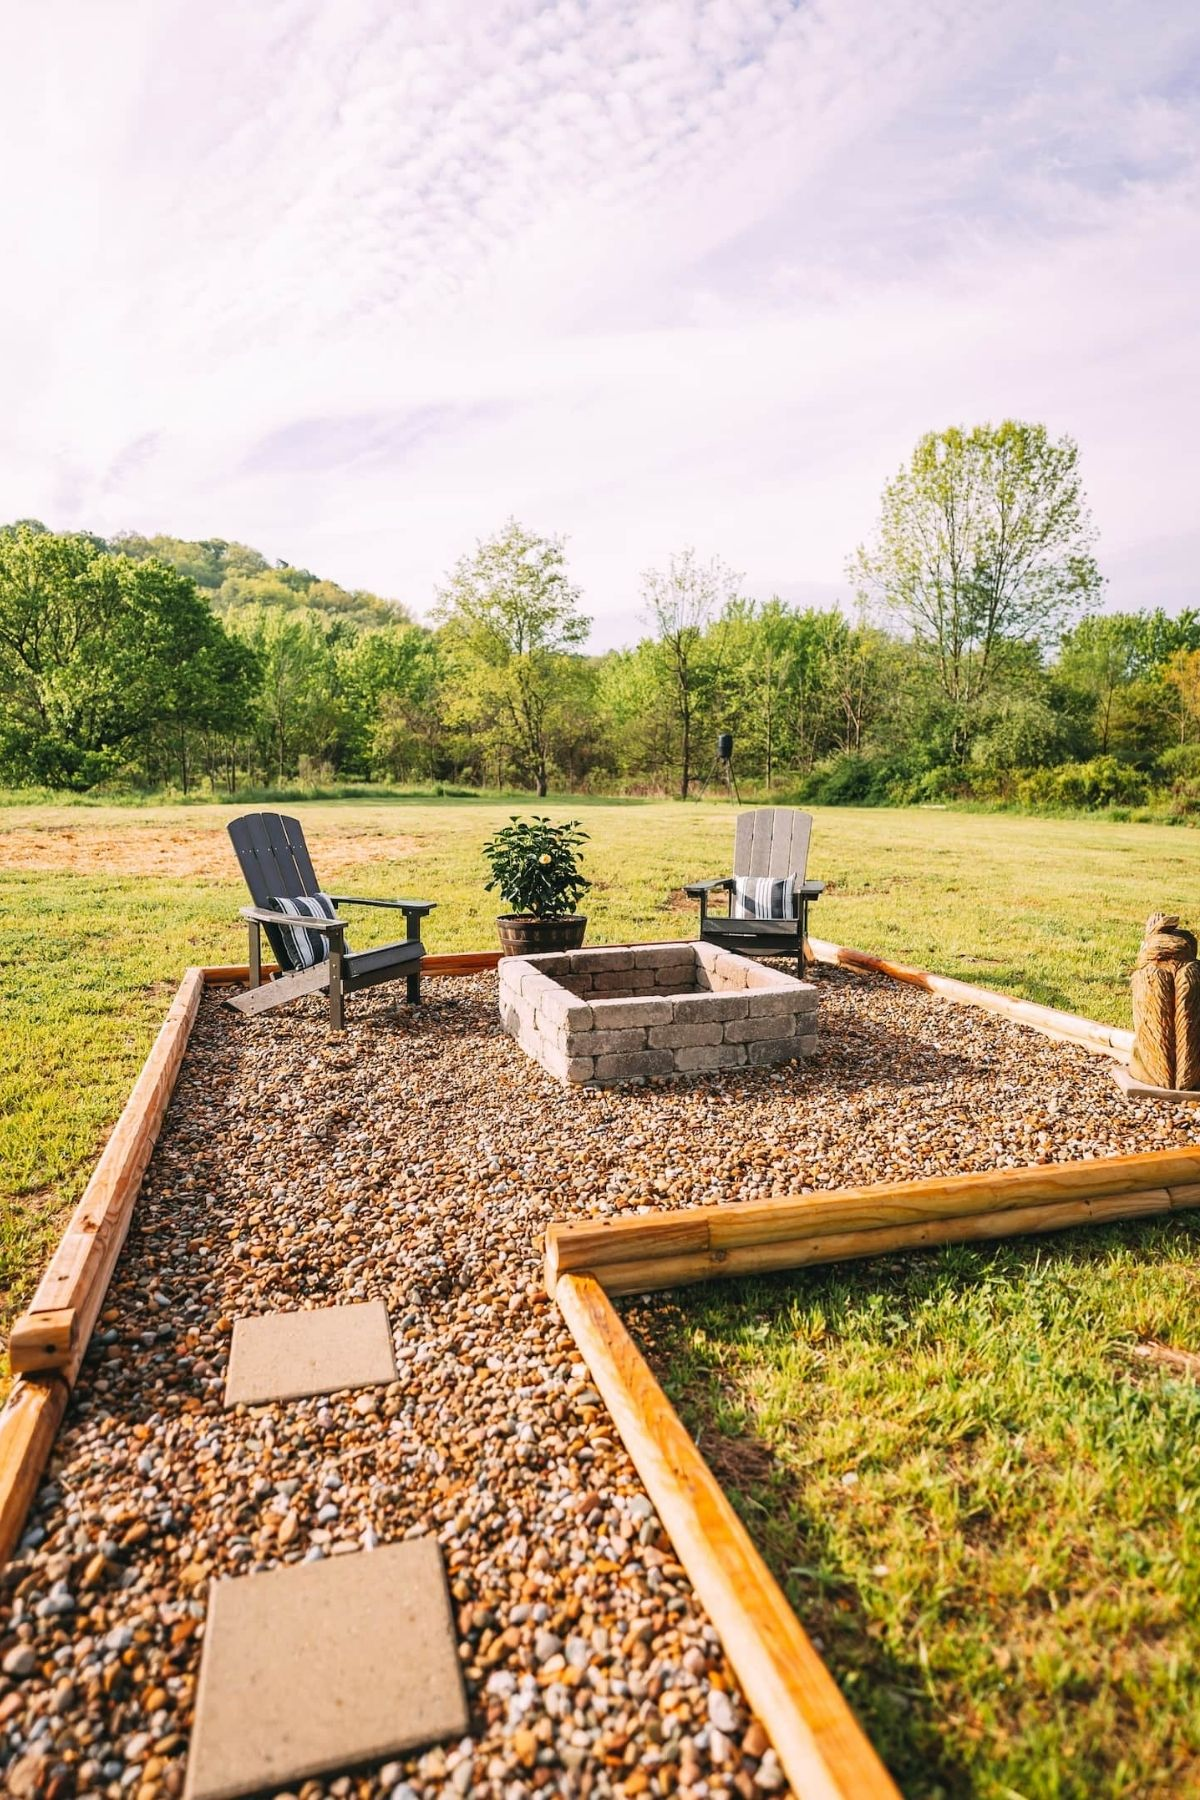 Backyard firepit and chairs in pebble walkway